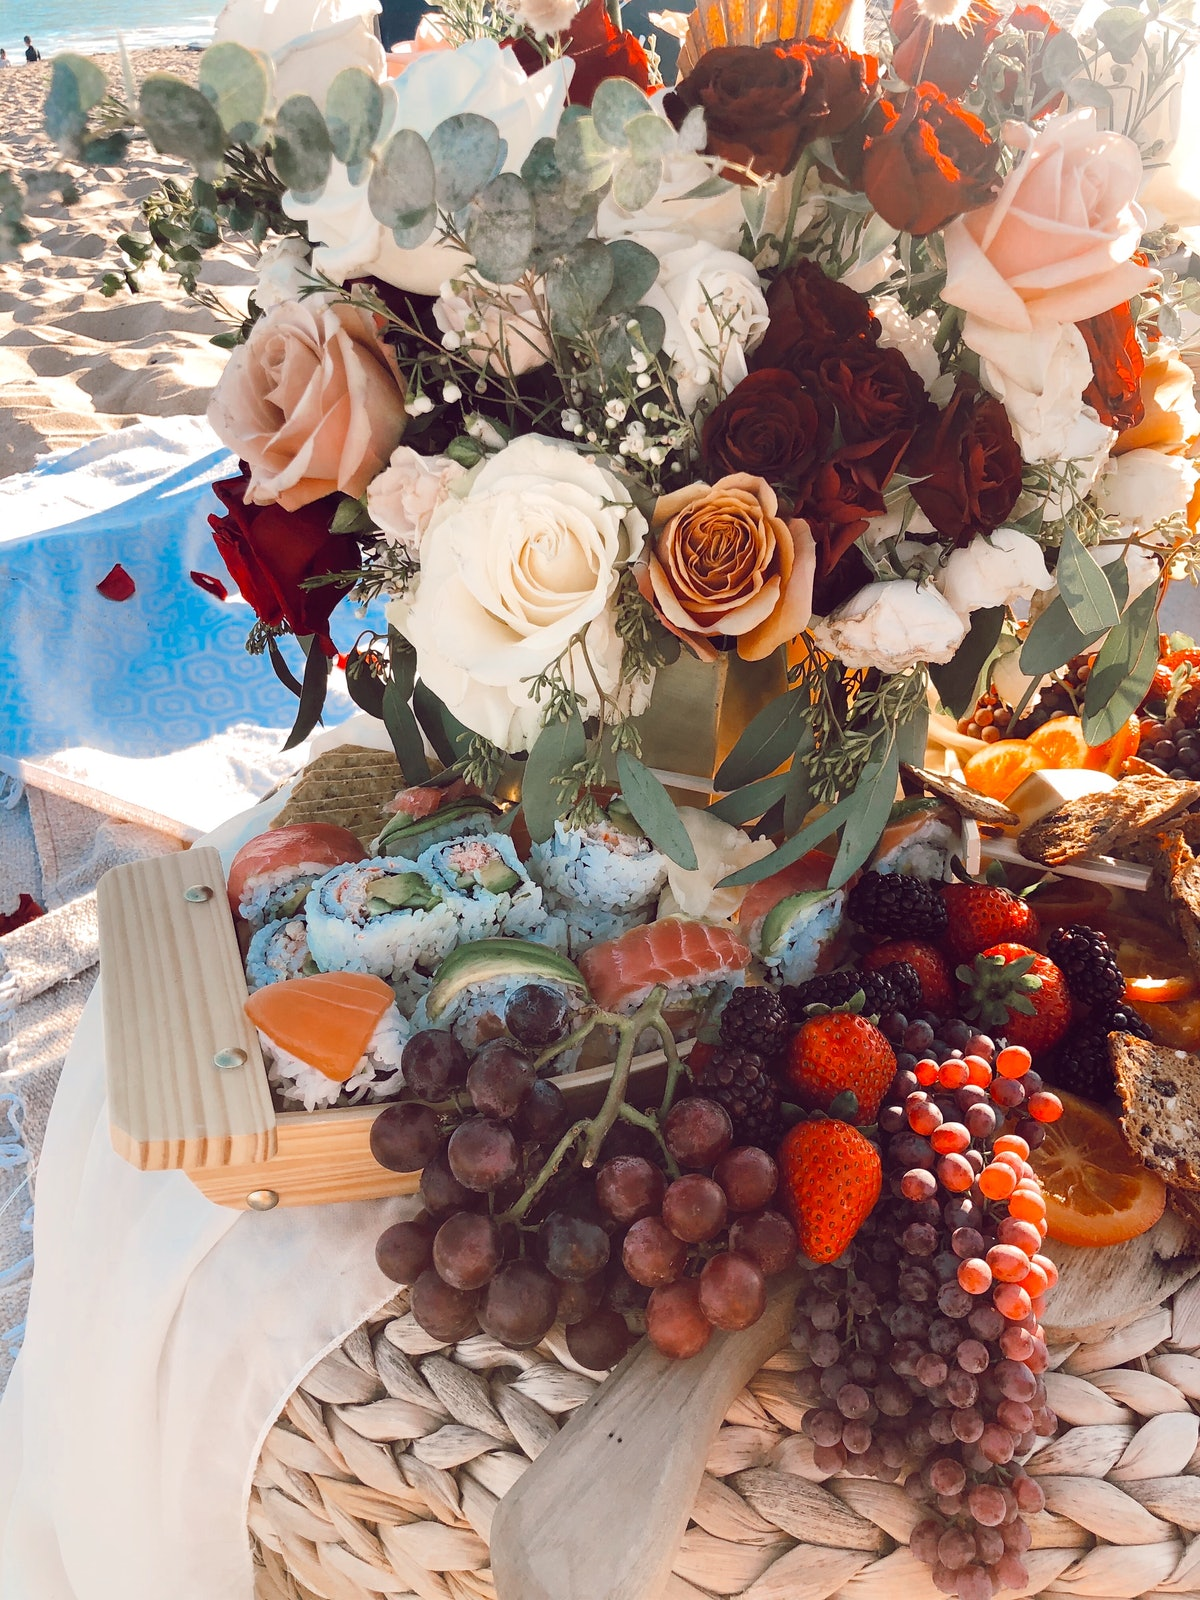 """The Picnic Collective's """"Simple Pleasures"""" package includes a spread of sushi, grapes, flowers, and Bohemian details."""